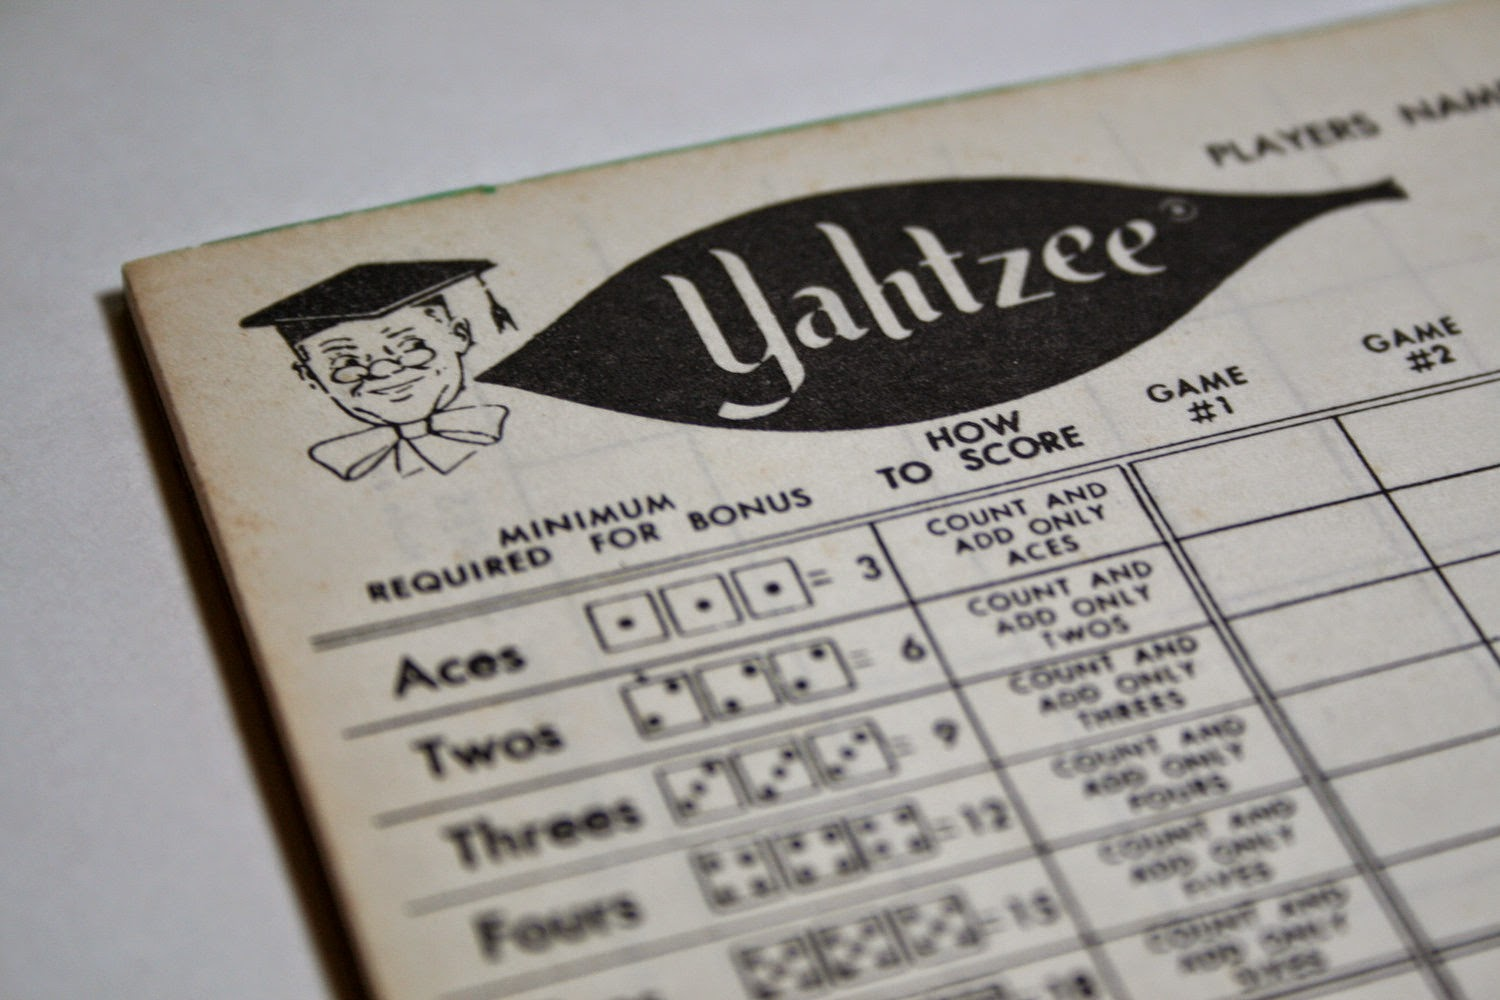 photo relating to Yahtzee Score Sheet Printable called Yahtzee On the net: Printable Yahtzee Ranking Sheet